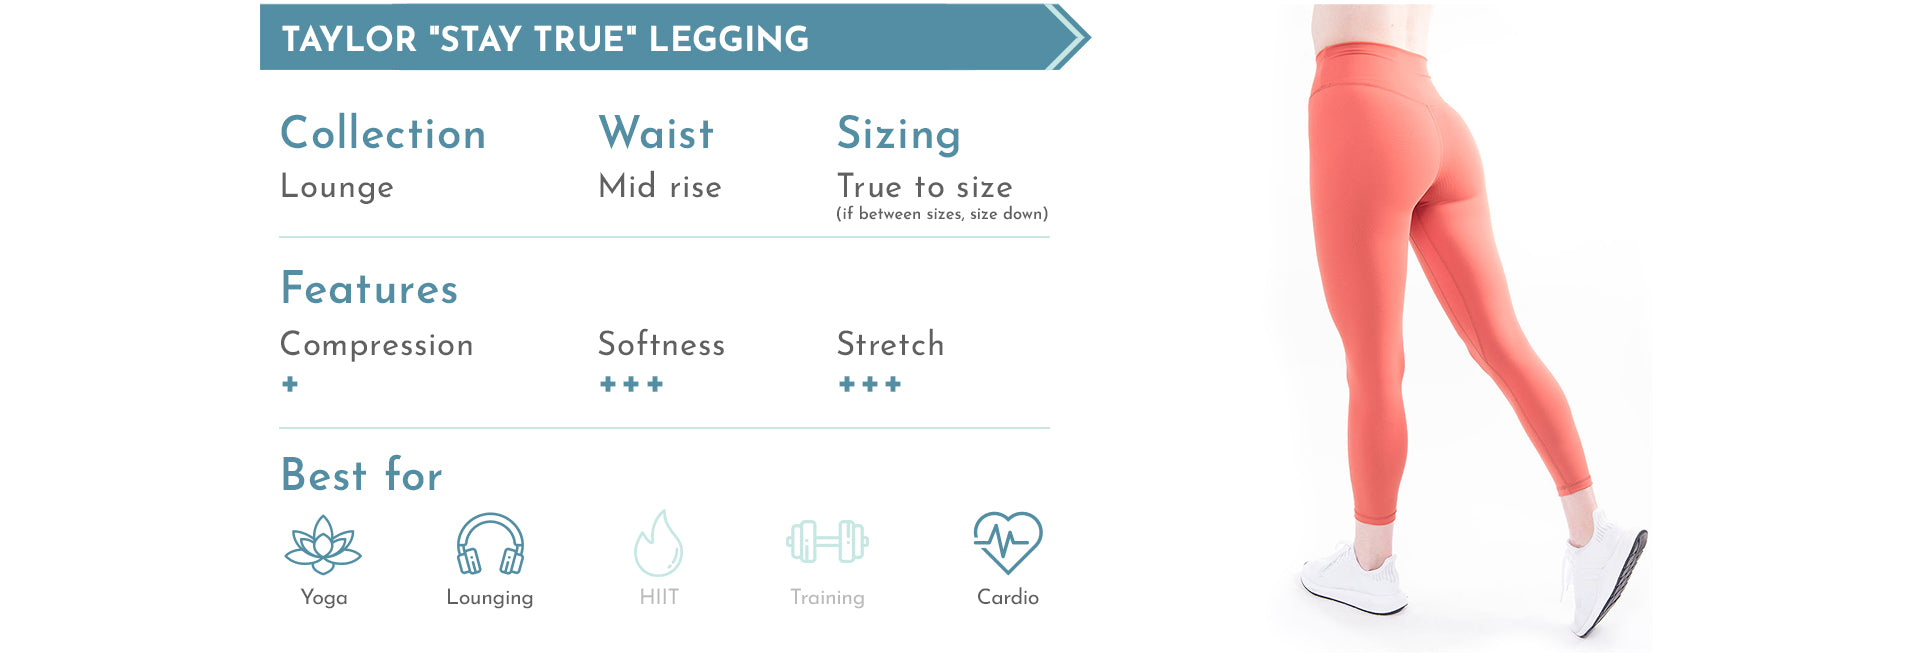 Legging Comparison Chart Ptula Learn how to take measurements and find out what clothing, footwear and accessory sizes are right for you. legging comparison chart ptula